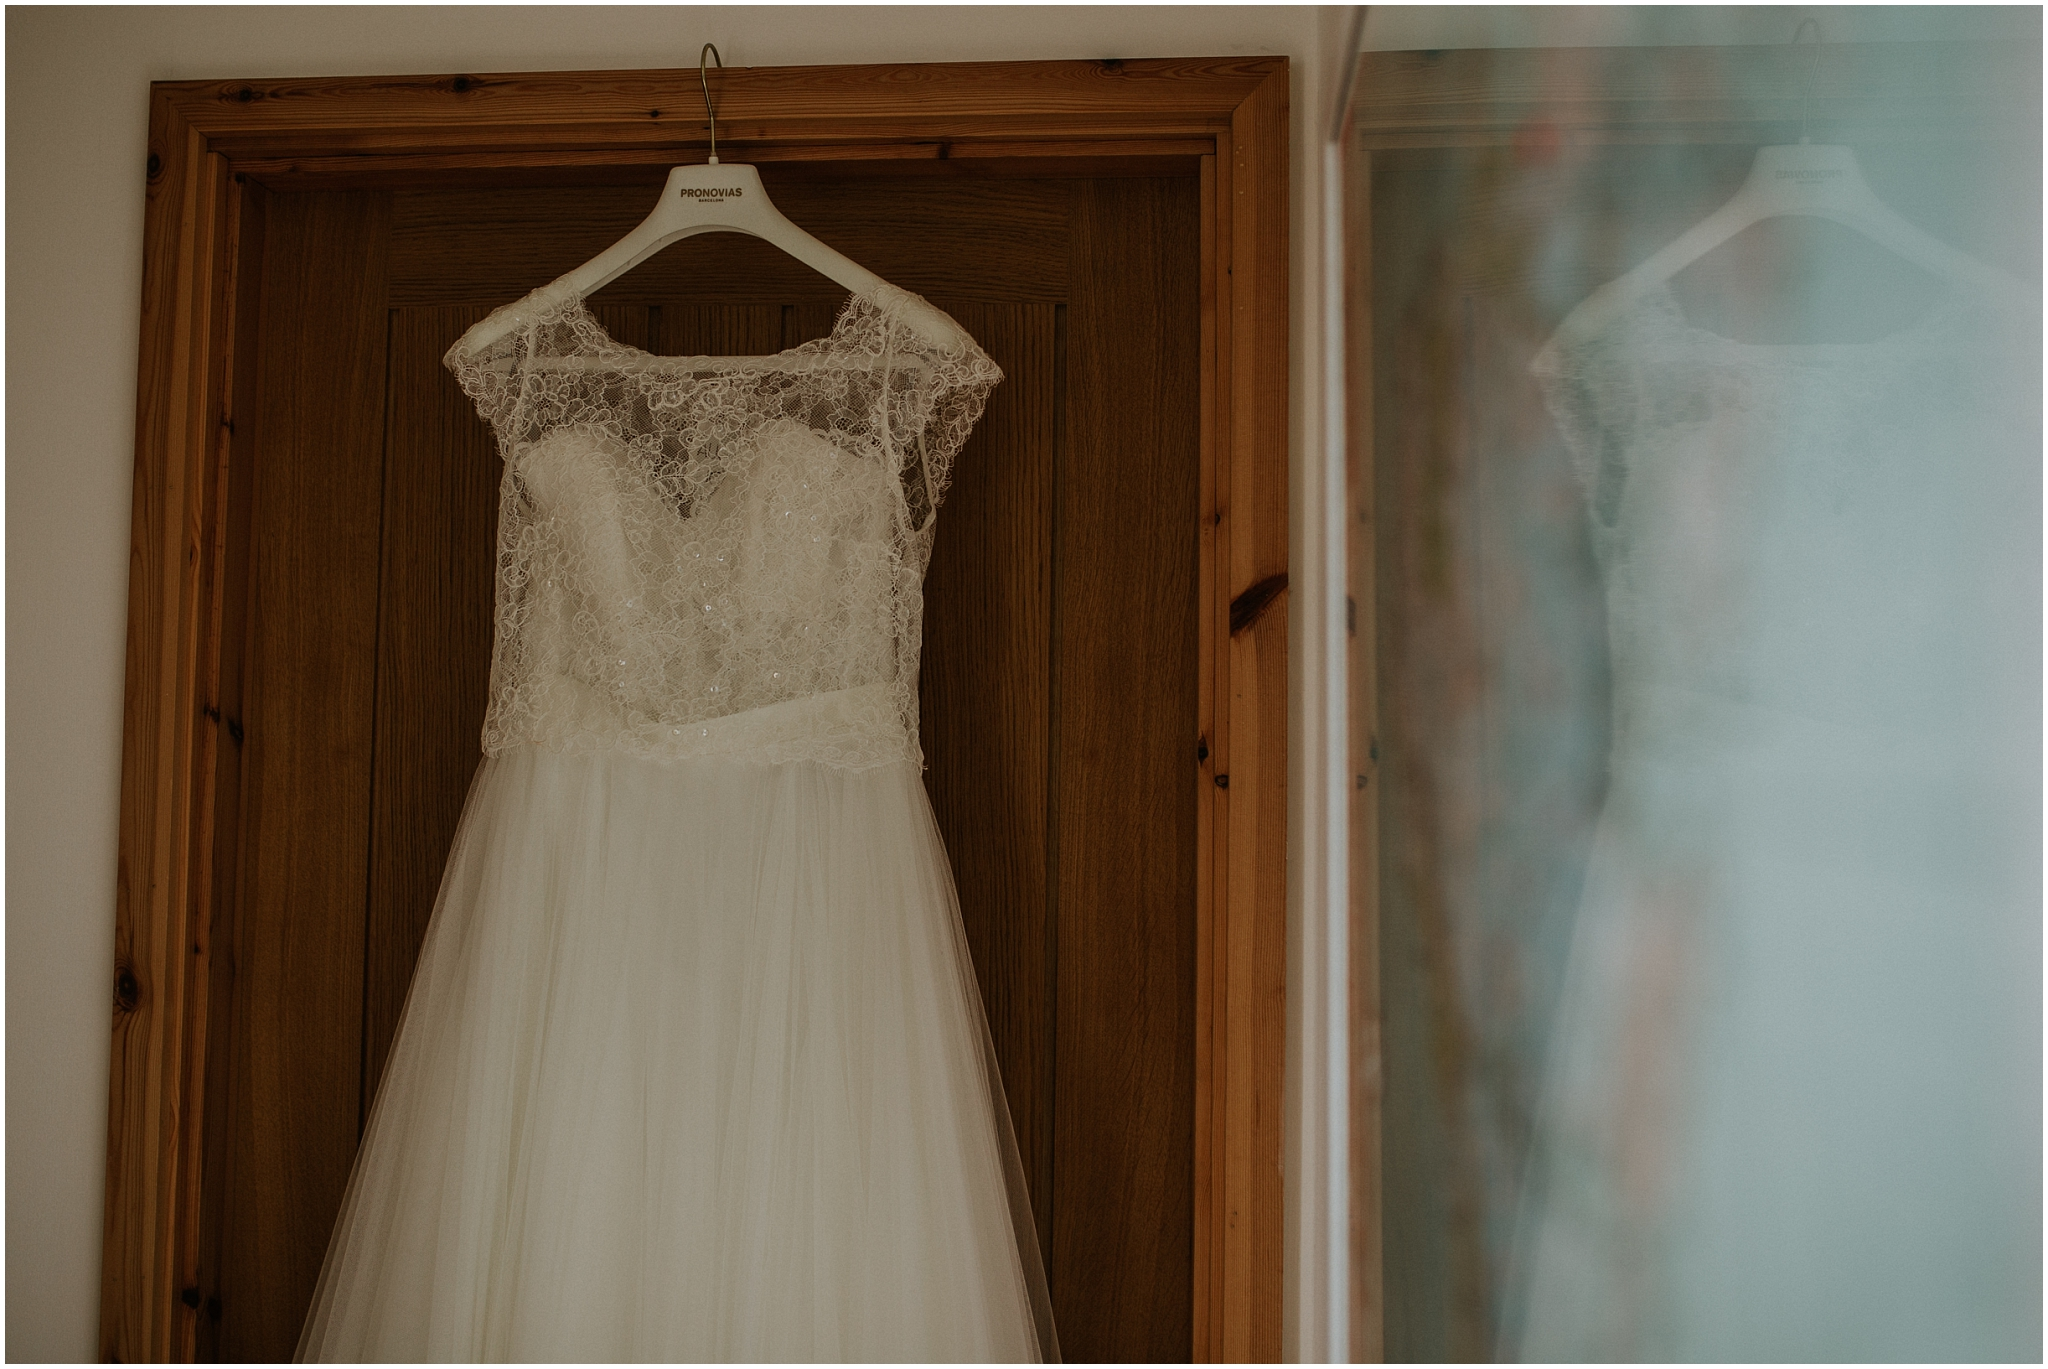 wedding dress hanging up in doorway